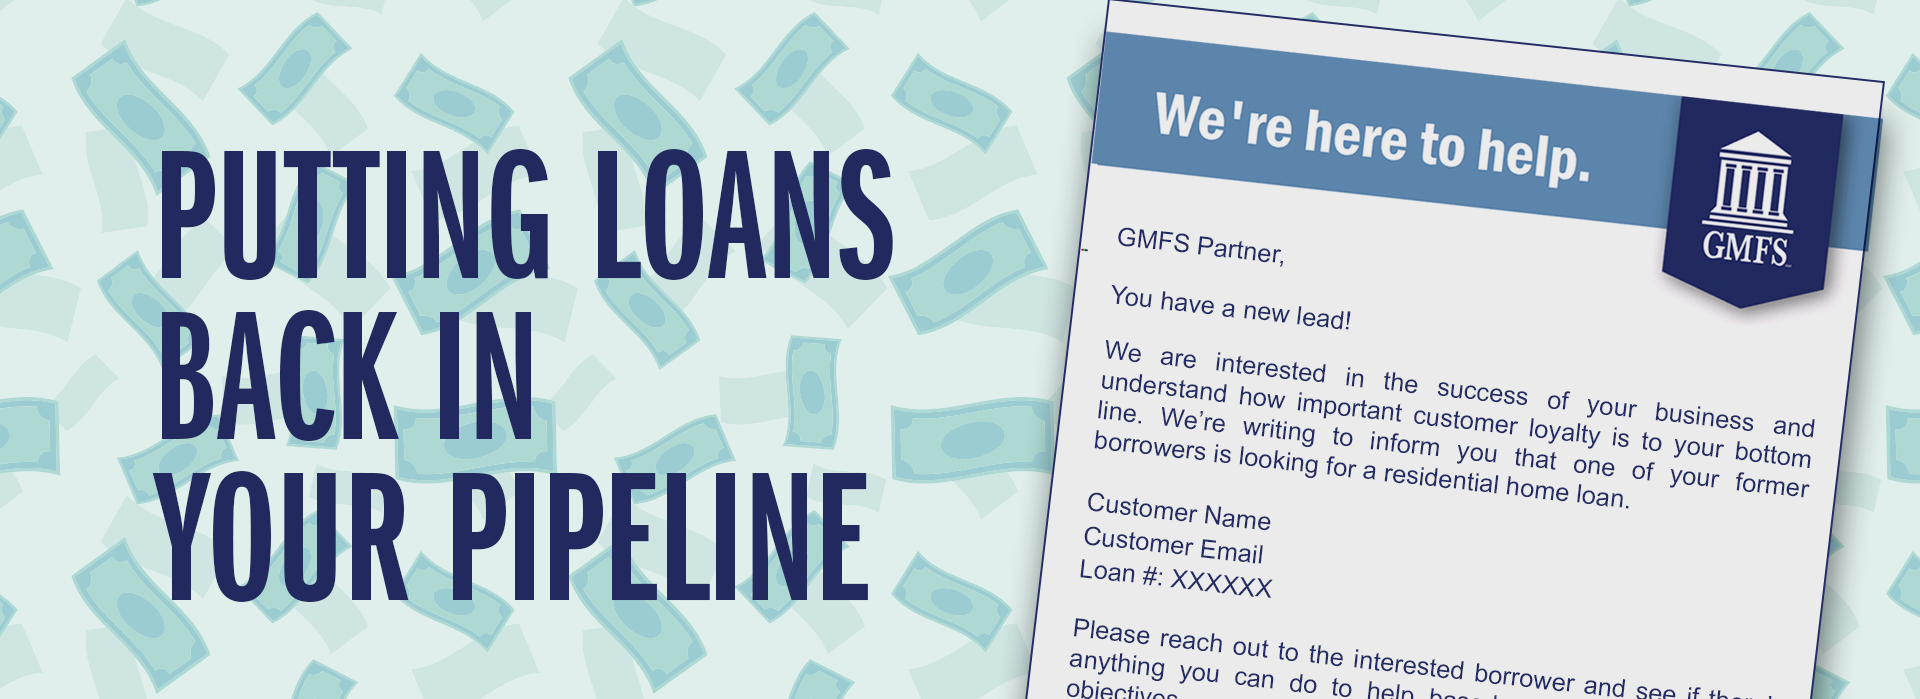 GMFS is Putting More Loans Back in Your Pipeline banner image